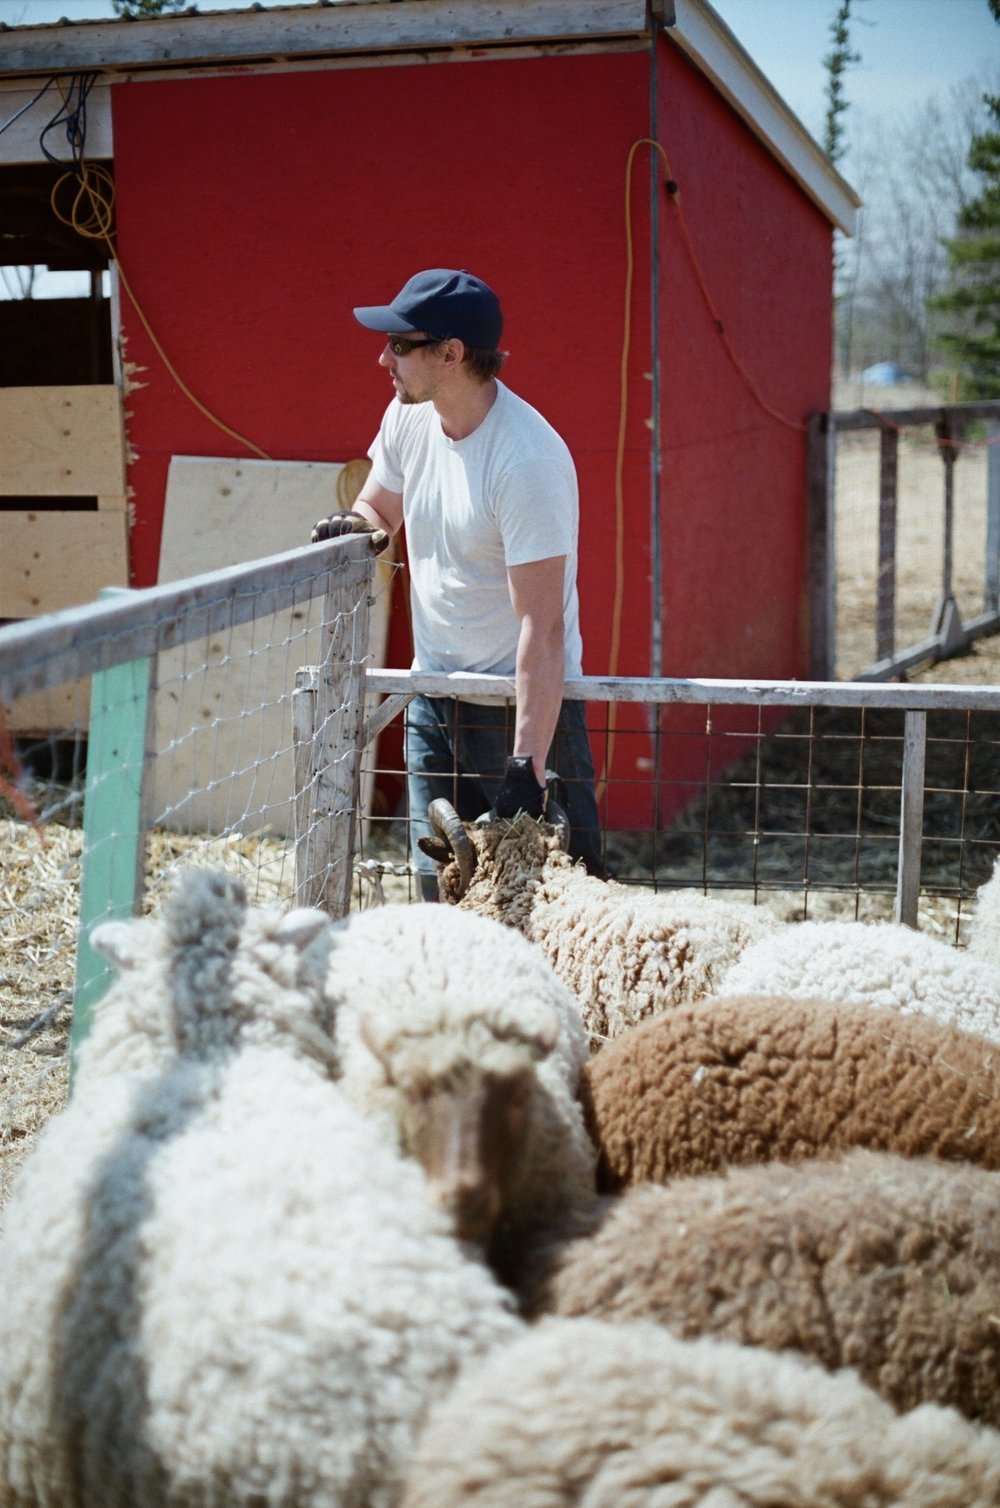 Luke our sheep wrangler for the day                                                   (Photo by Mackenzie Smith)